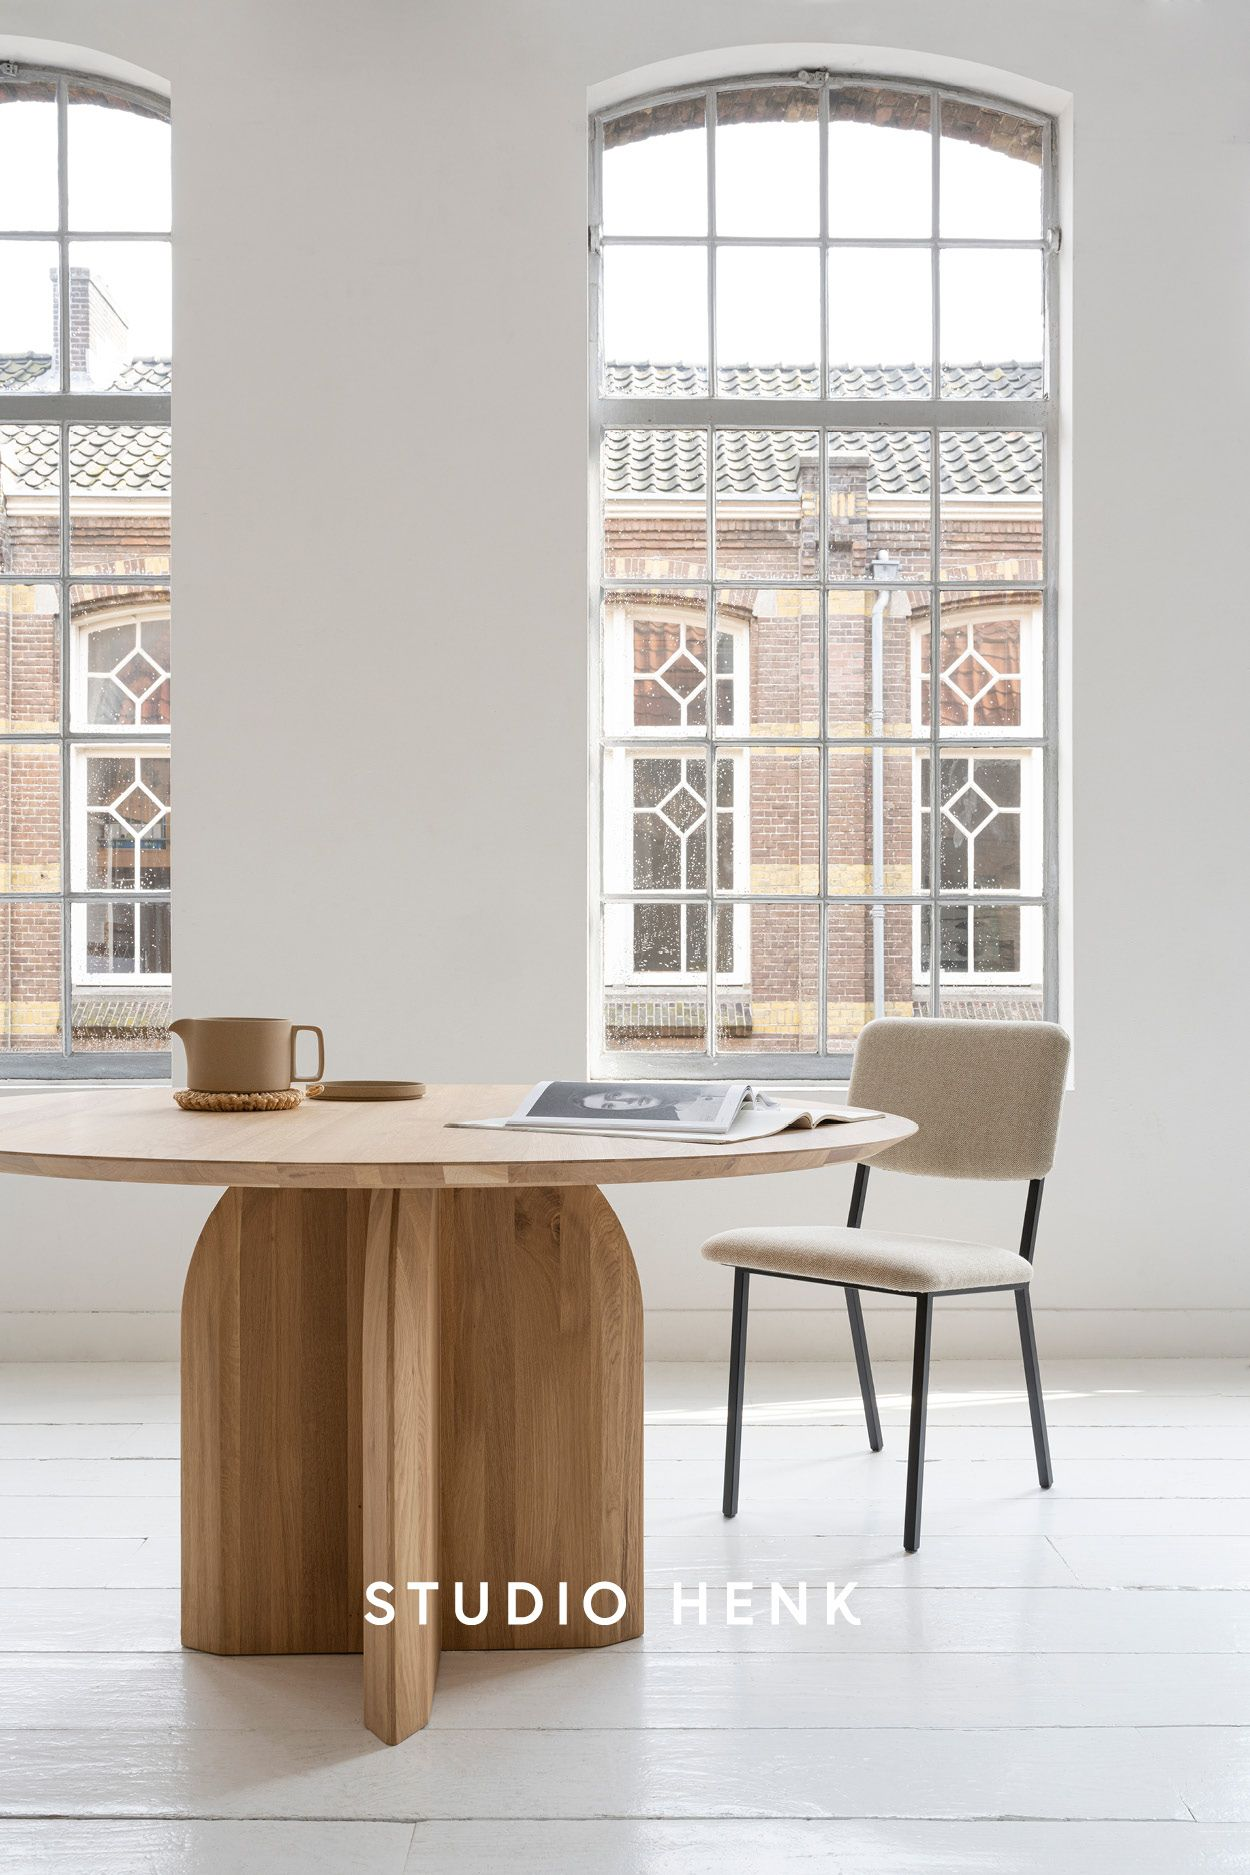 Style your dining room with a Studio HENK round oak table